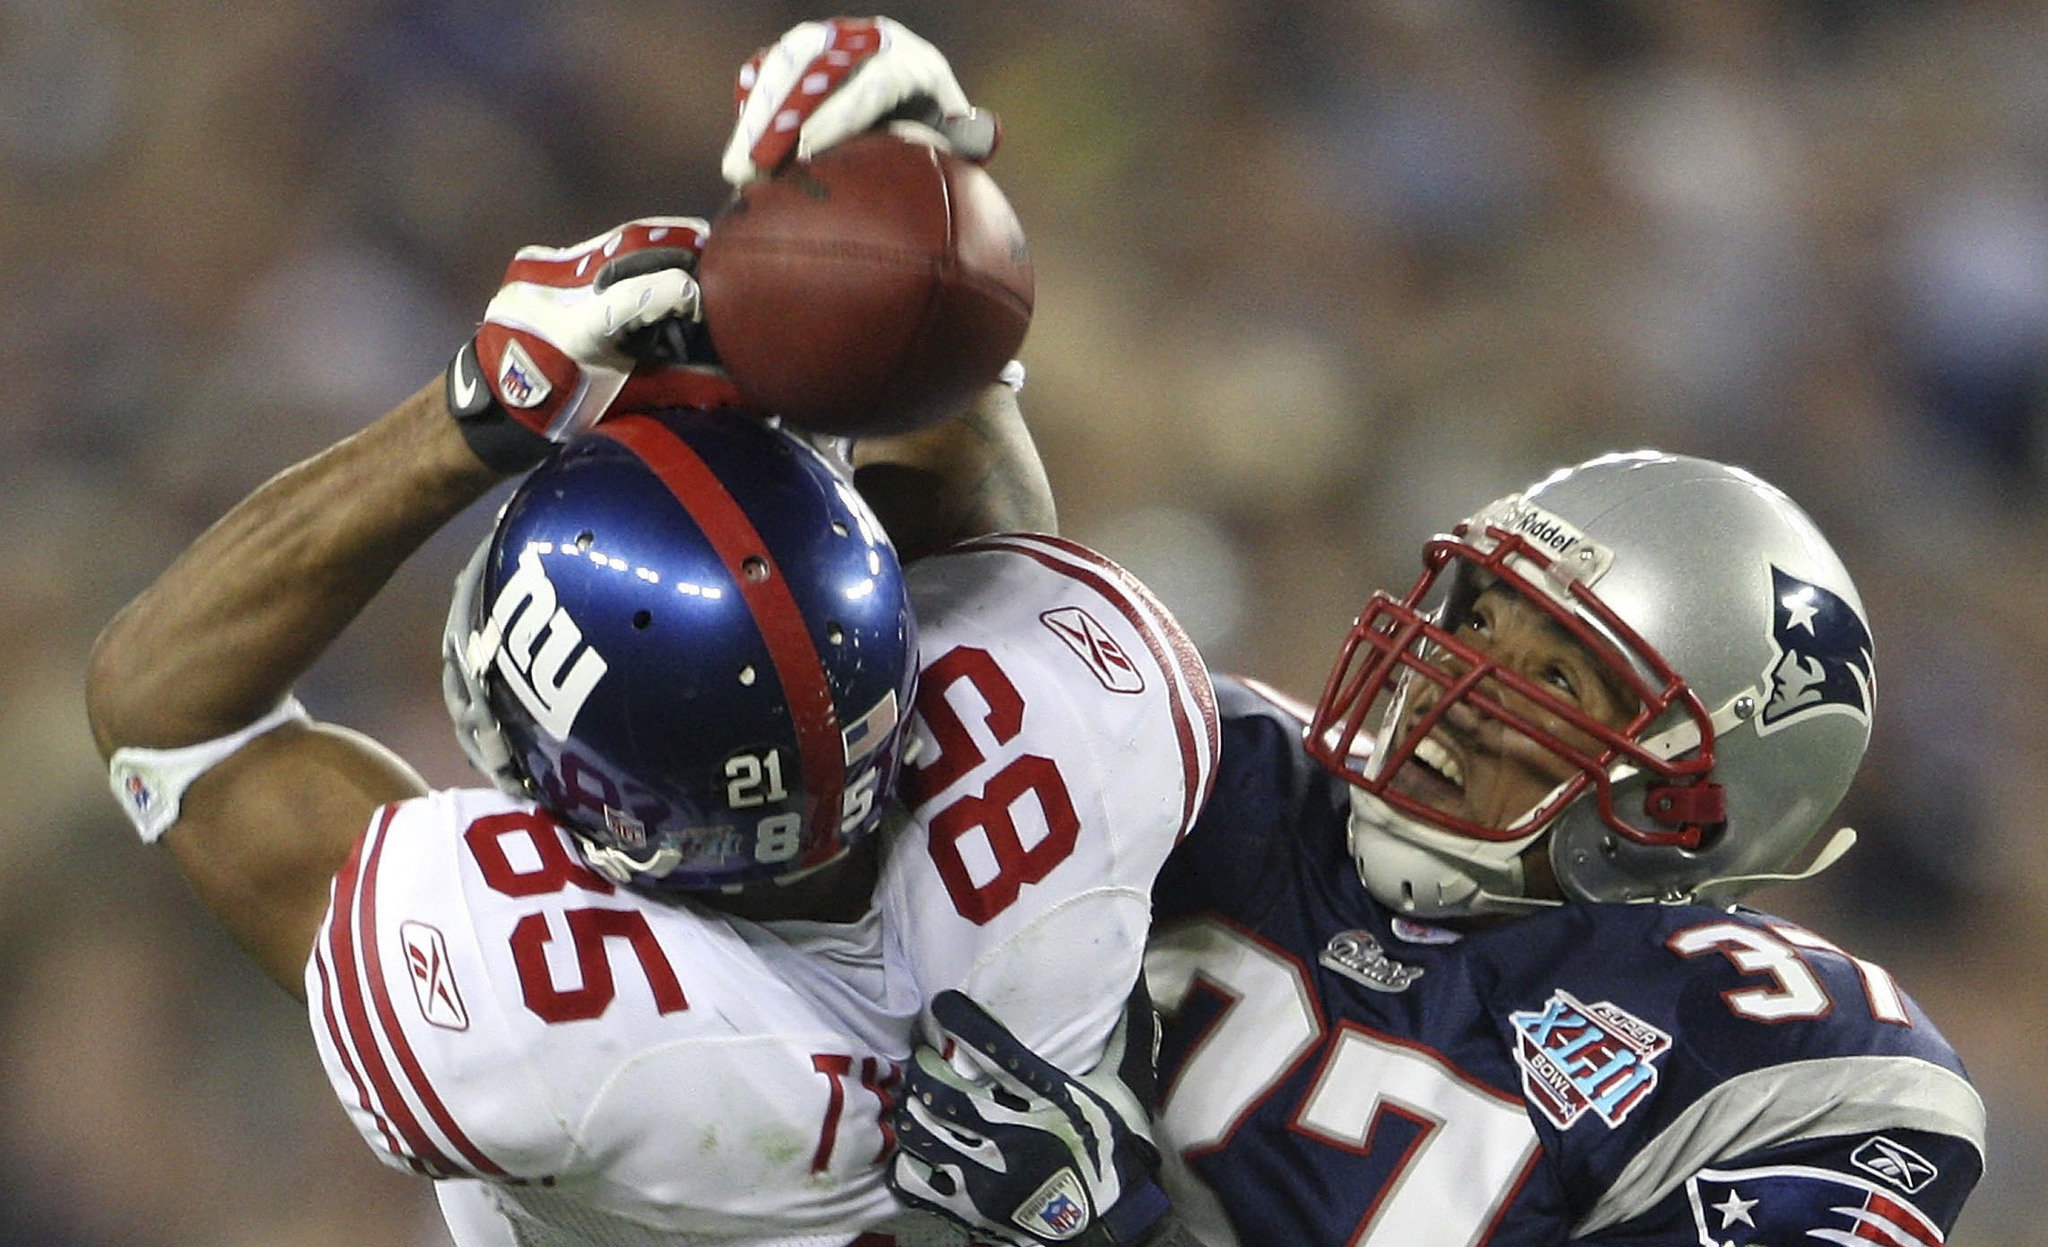 David Tyree's Helmet catch helped to pull off one of the biggest upsets in NFL history